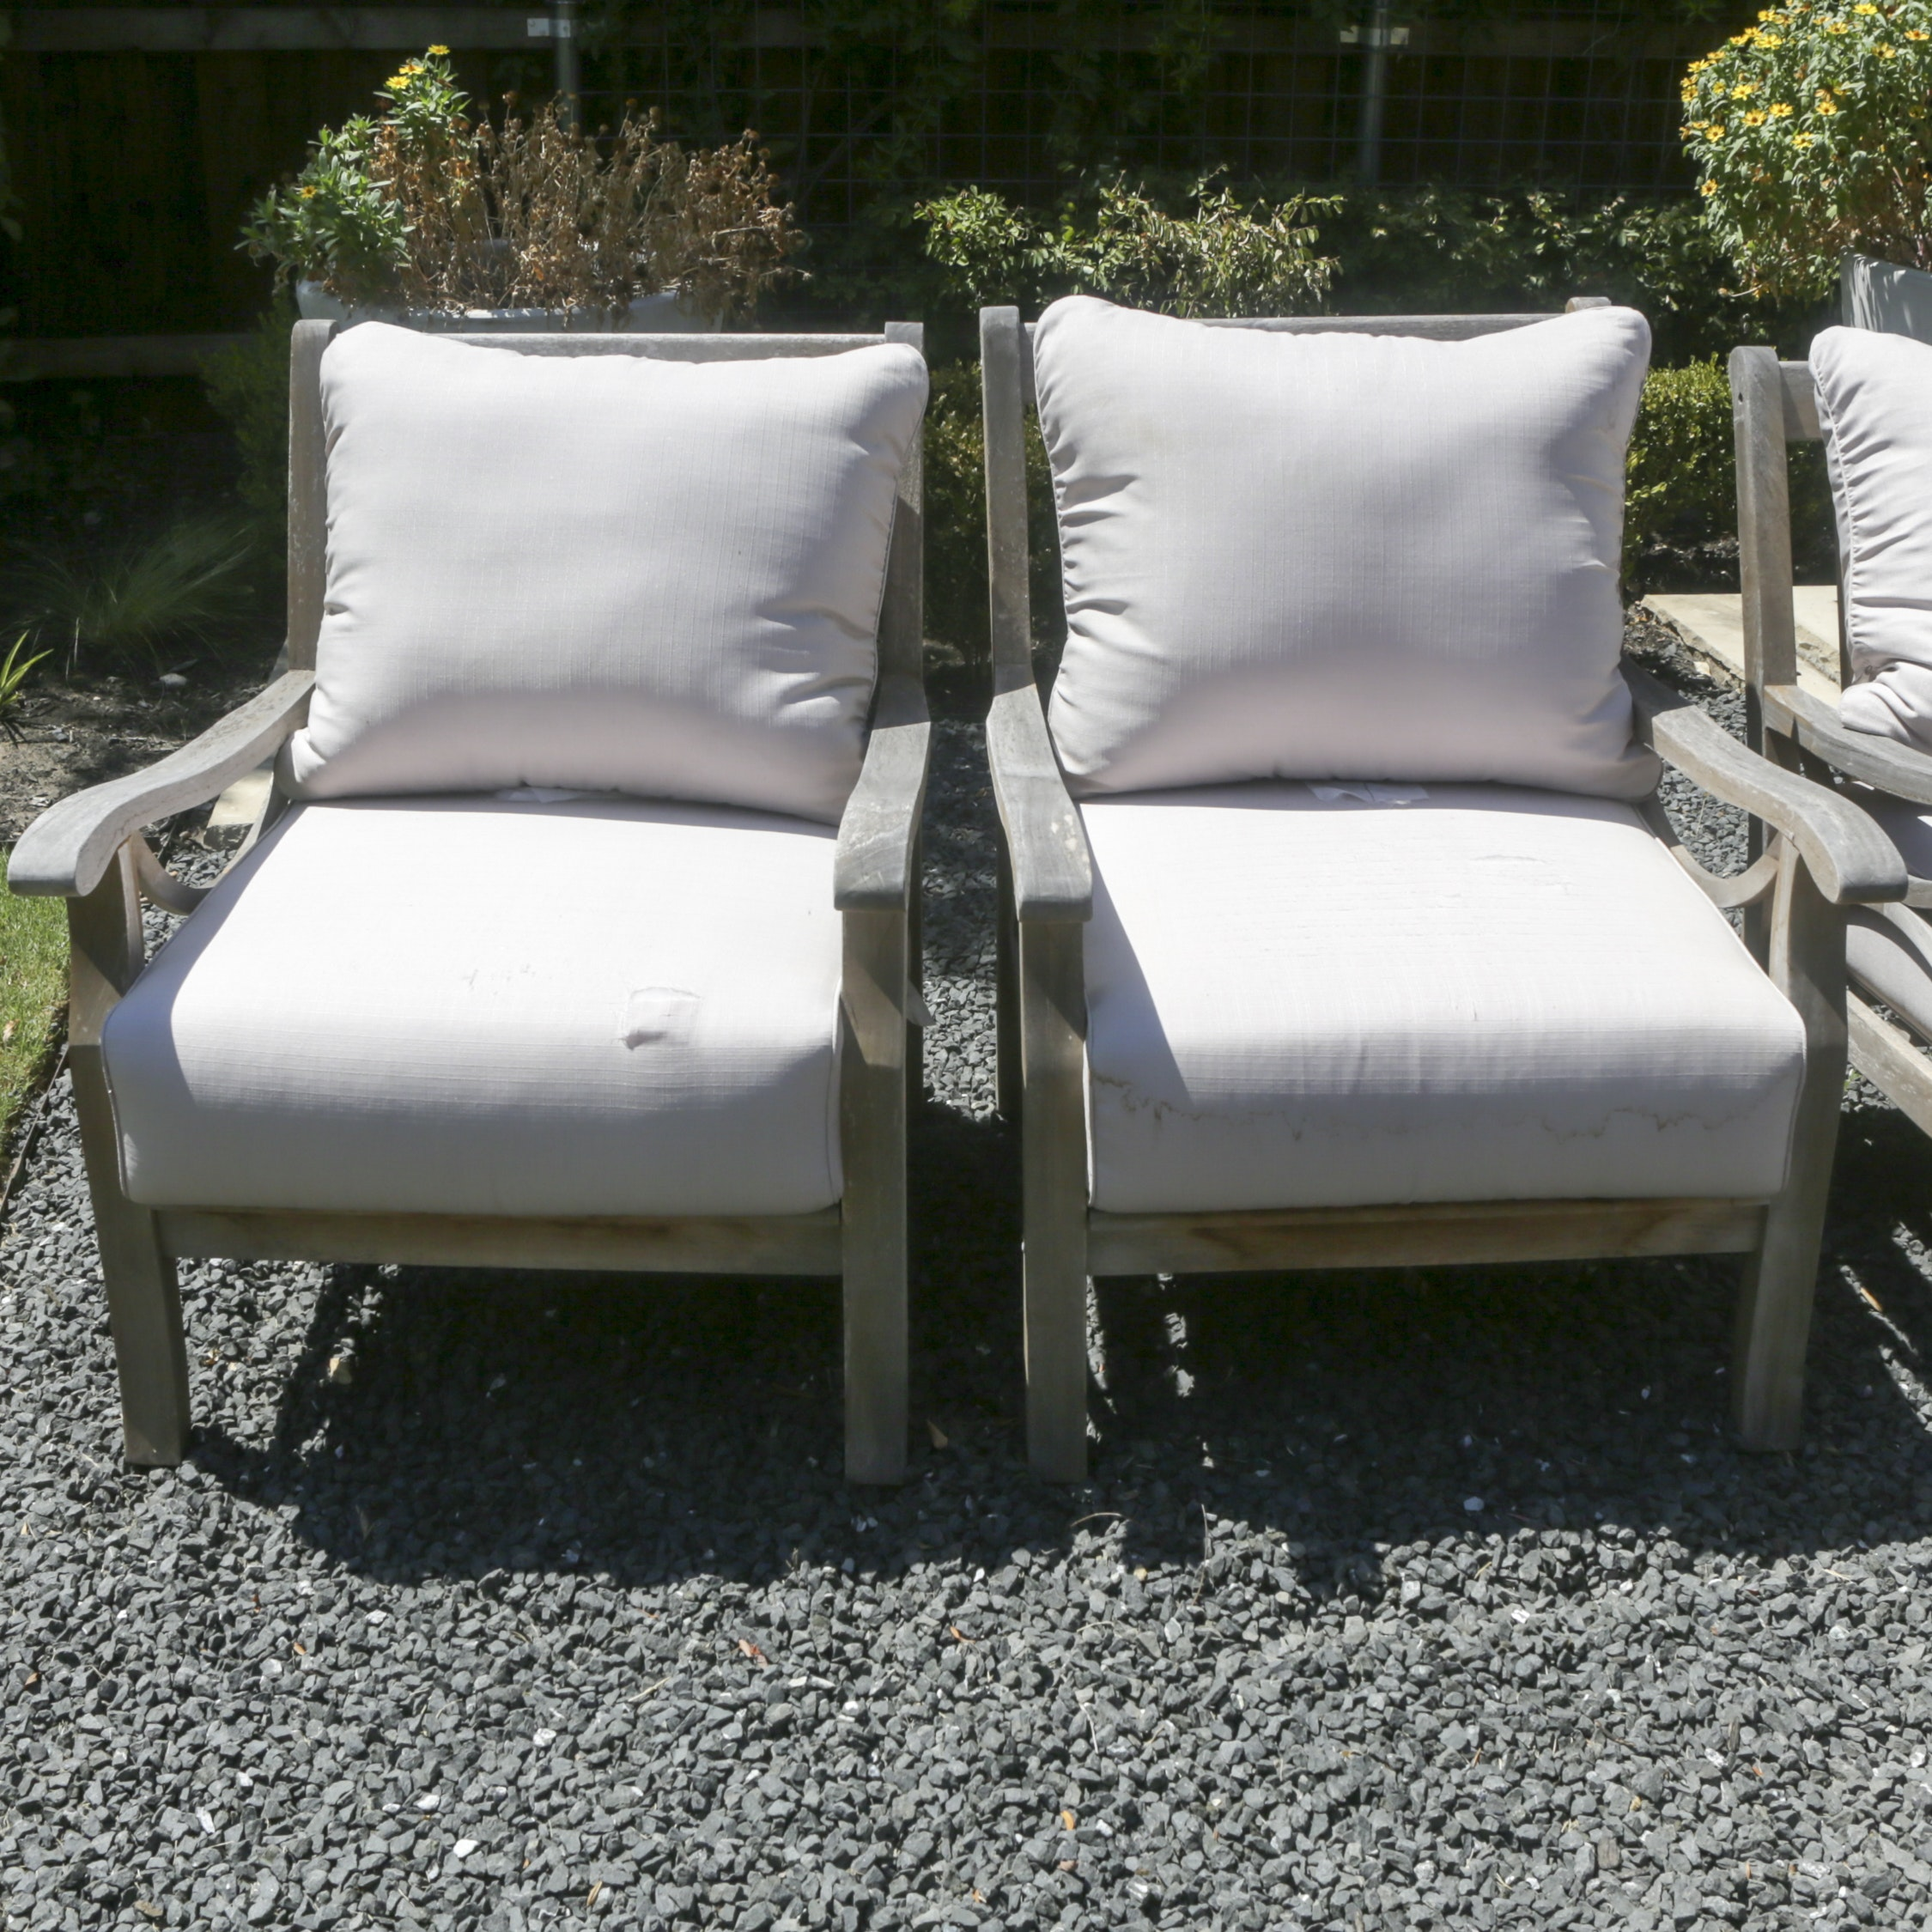 Wooden Patio Furniture Armchairs with Cushions